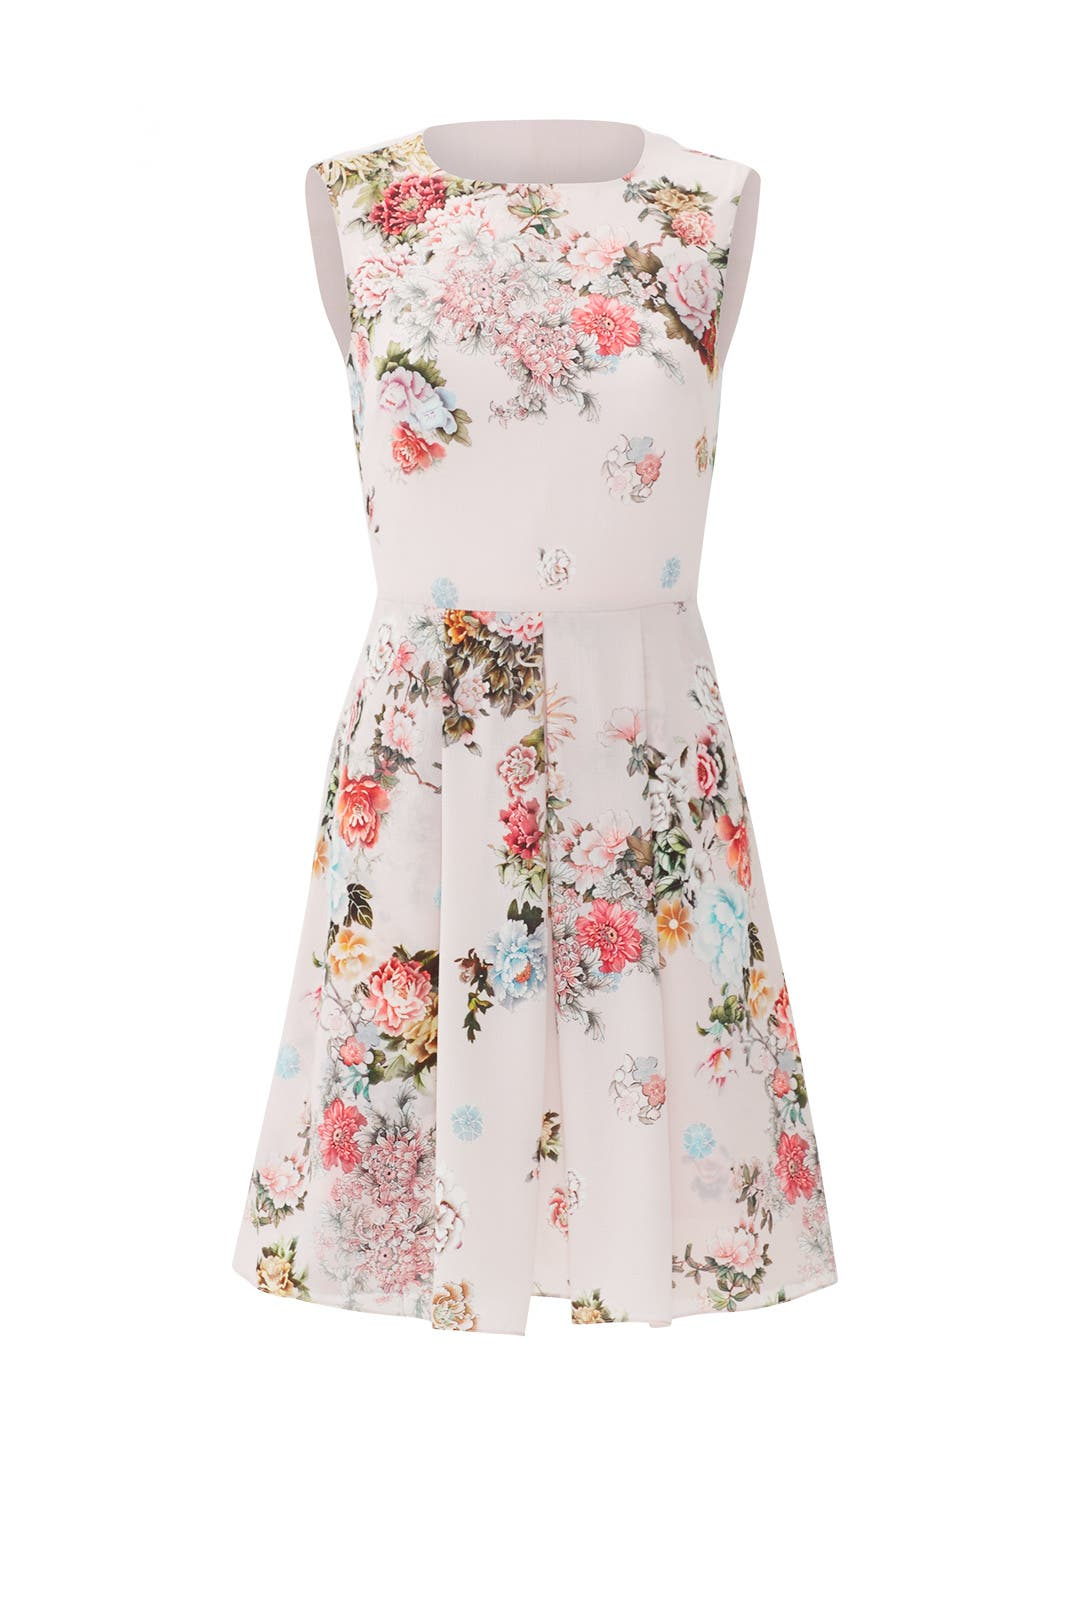 Rose Garden Dress by Slate Willow for 40 50 Rent the Runway